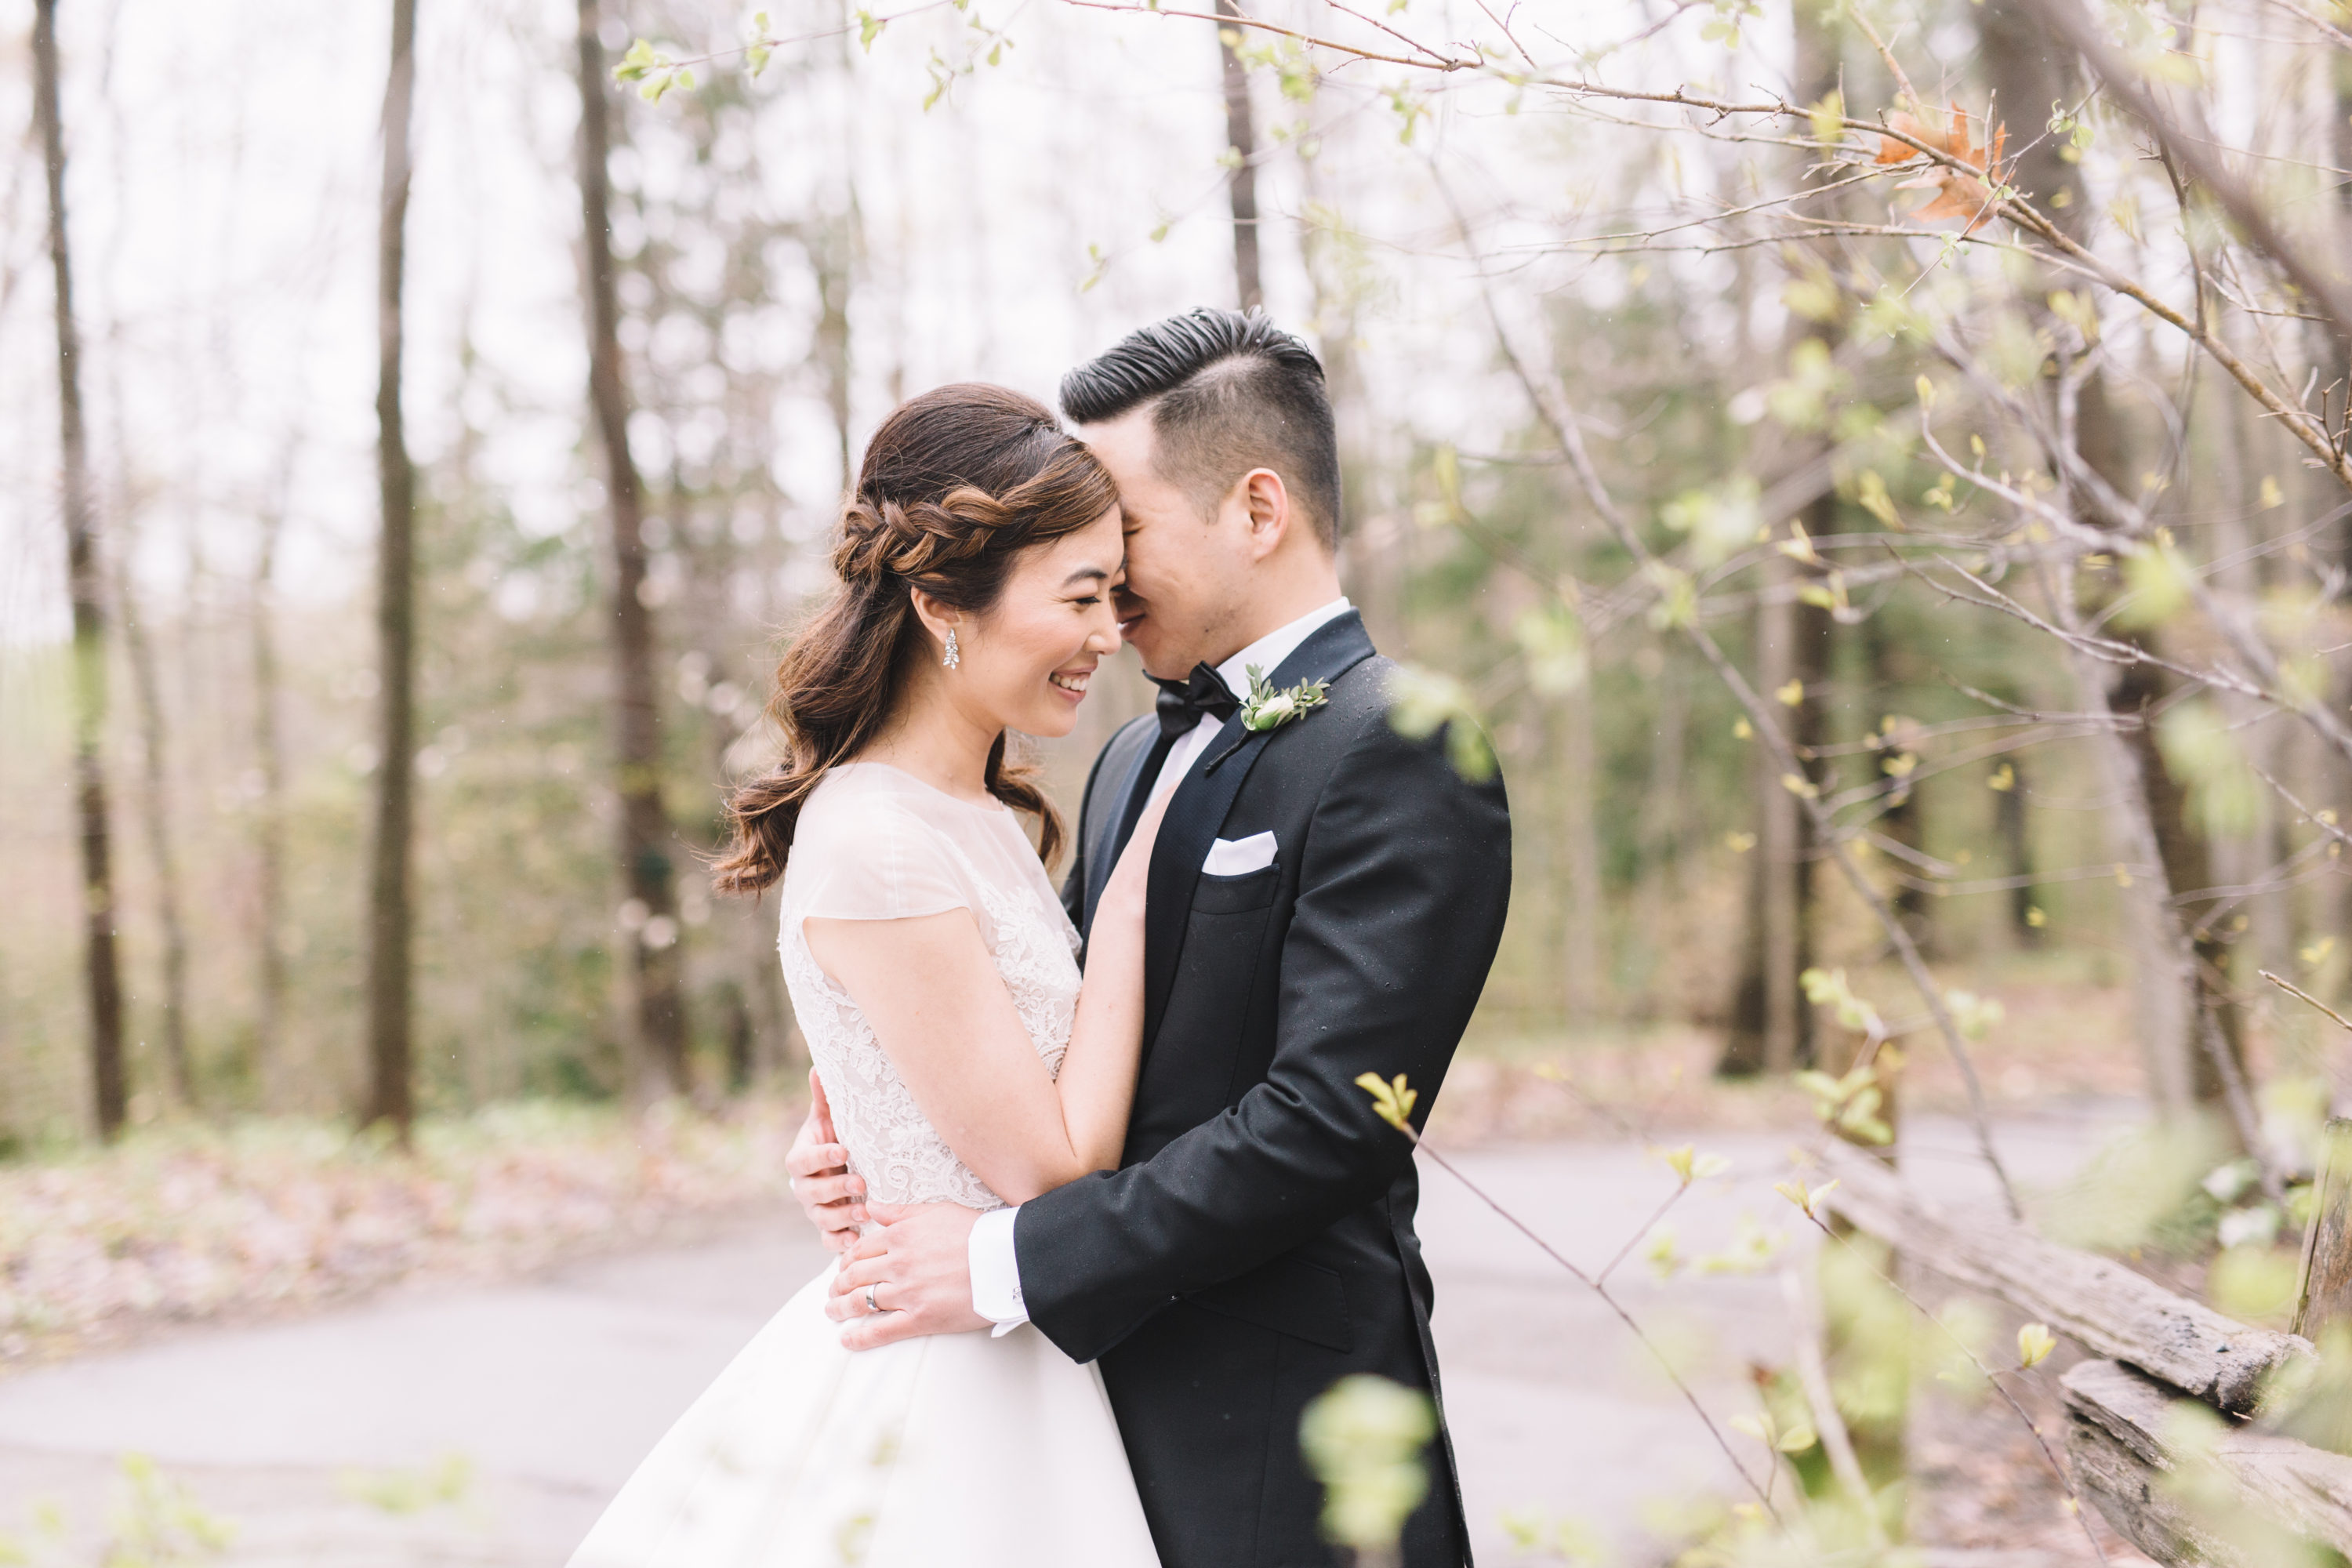 Bride and groom snuggling in rainy forest at Whistle Bear Golf Club